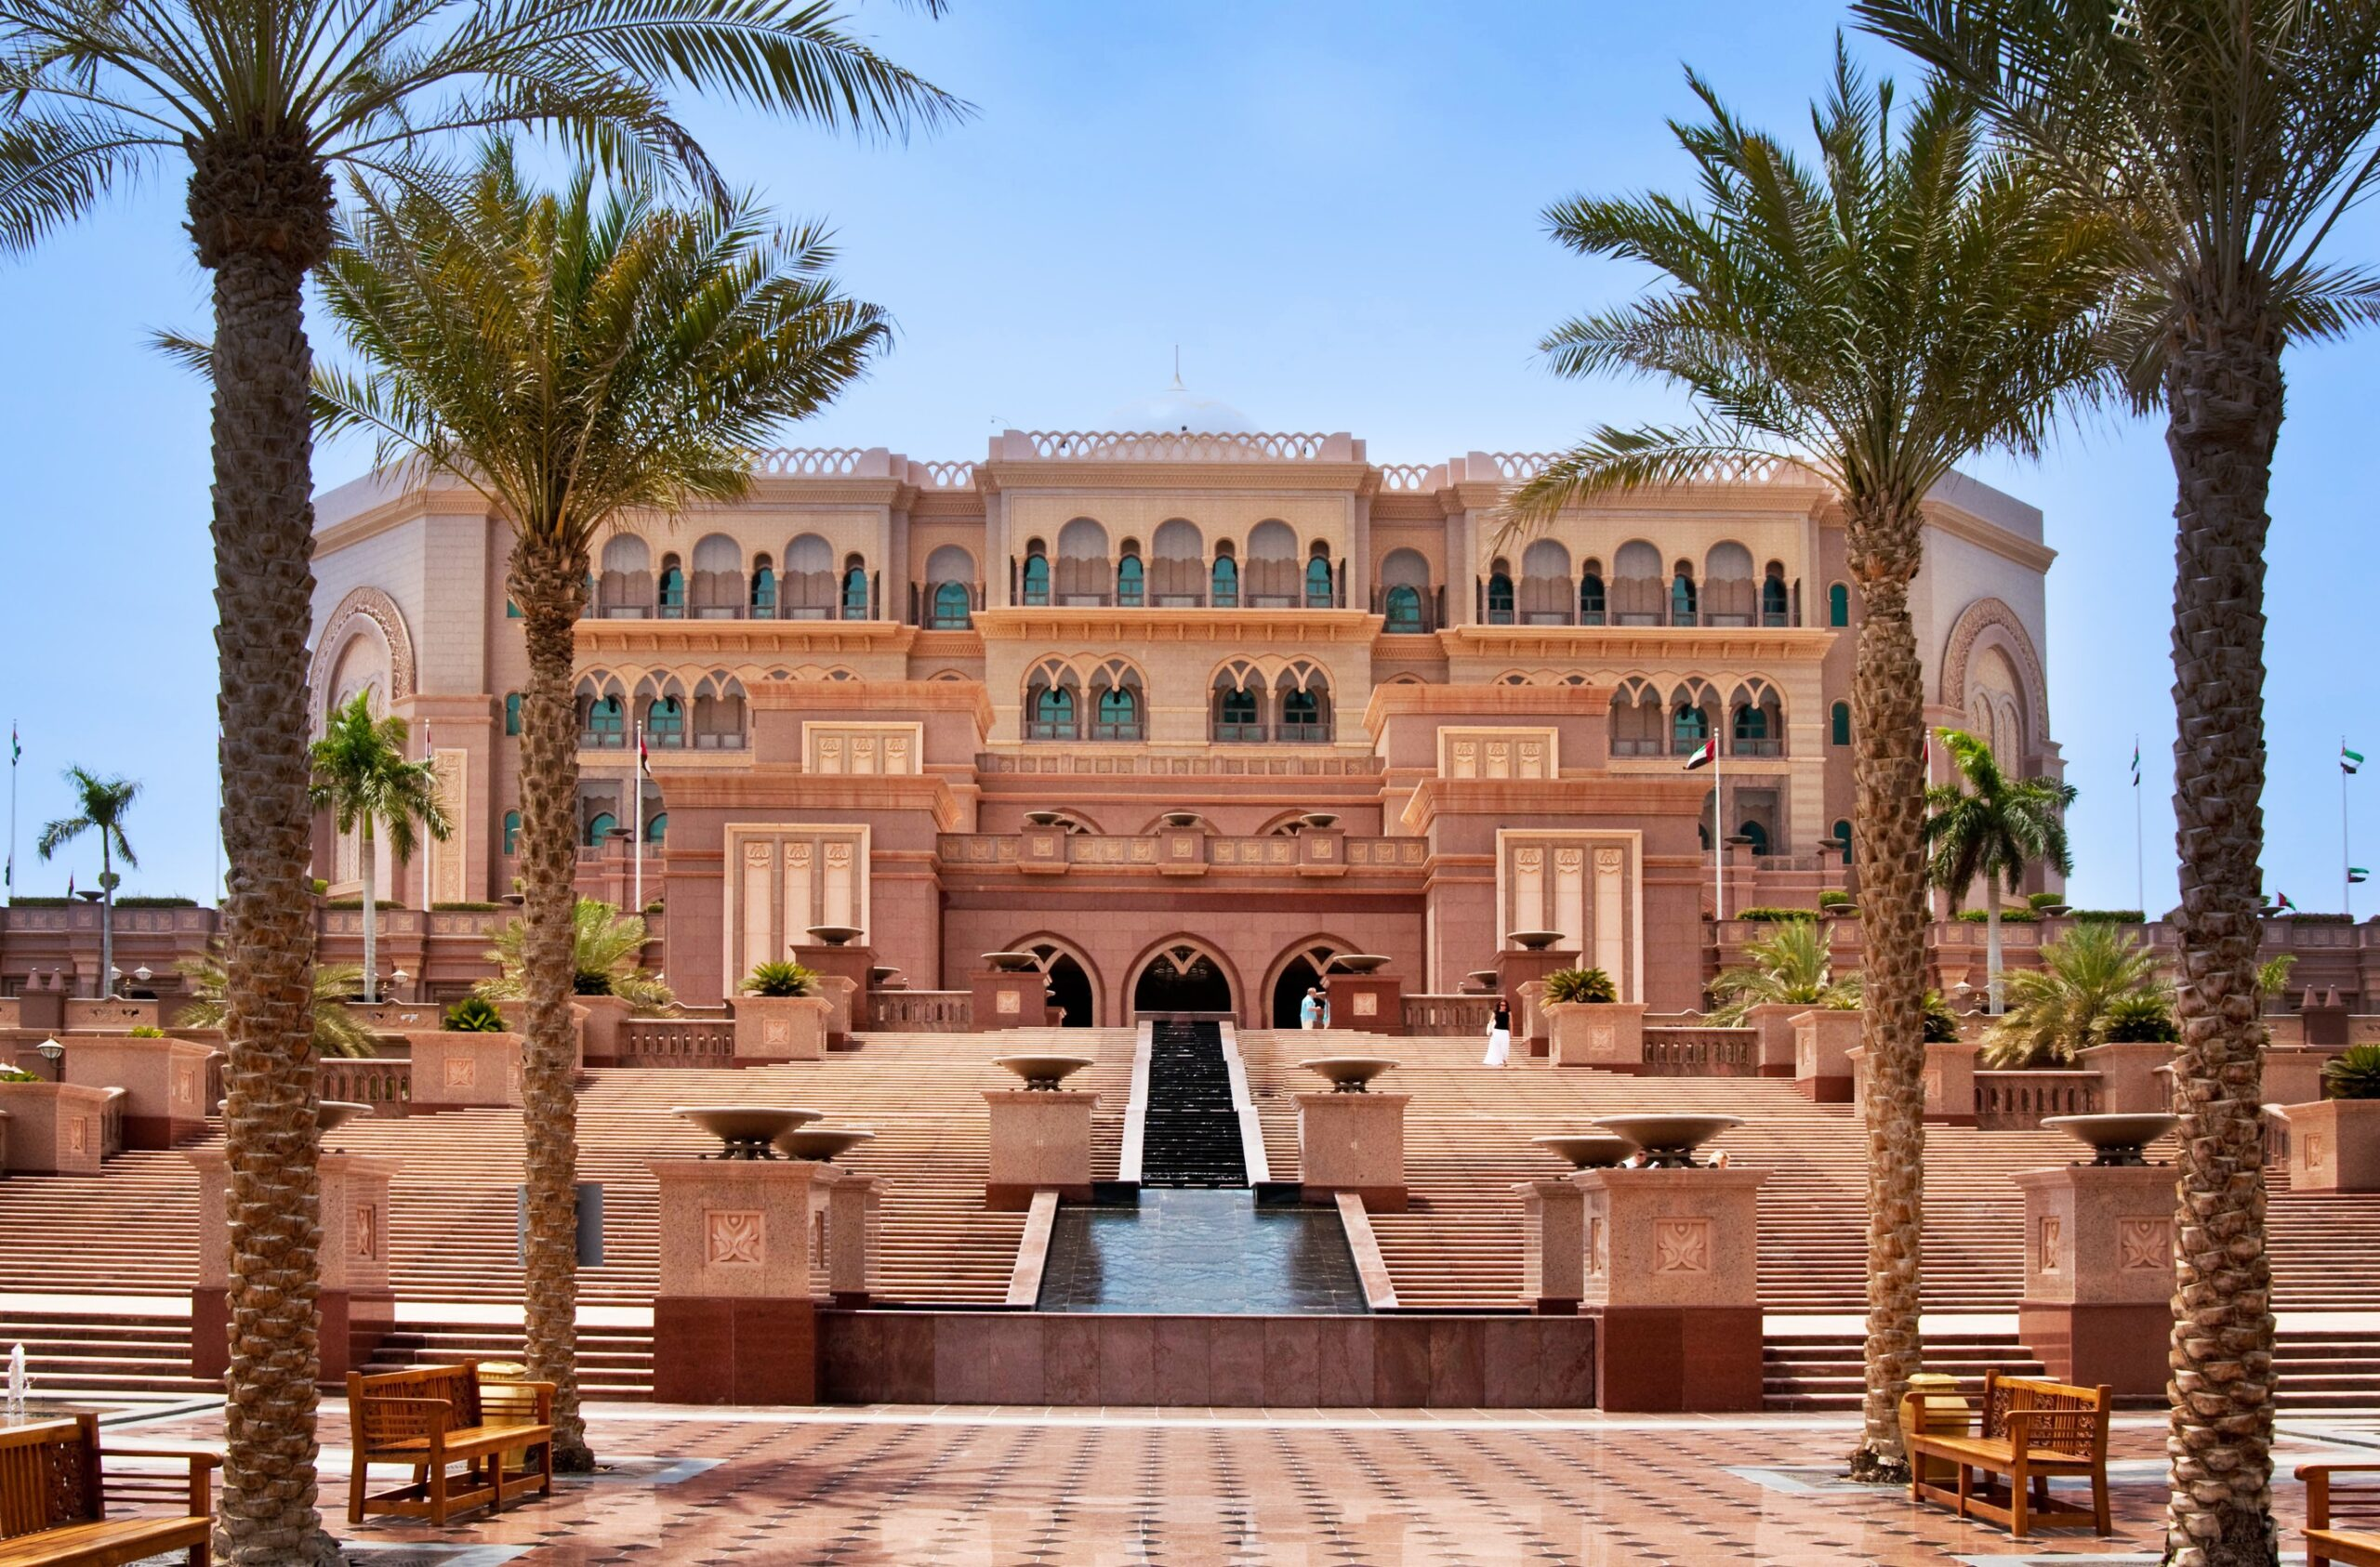 DUBAI - JUNE 5: Emirates Palace in Abu Dhabi on June 5, 2013 in Dubai. Emirates Palace was originally conceived as a venue for government summits and conferences in the Persian Gulf, and only later was turned into a hotel